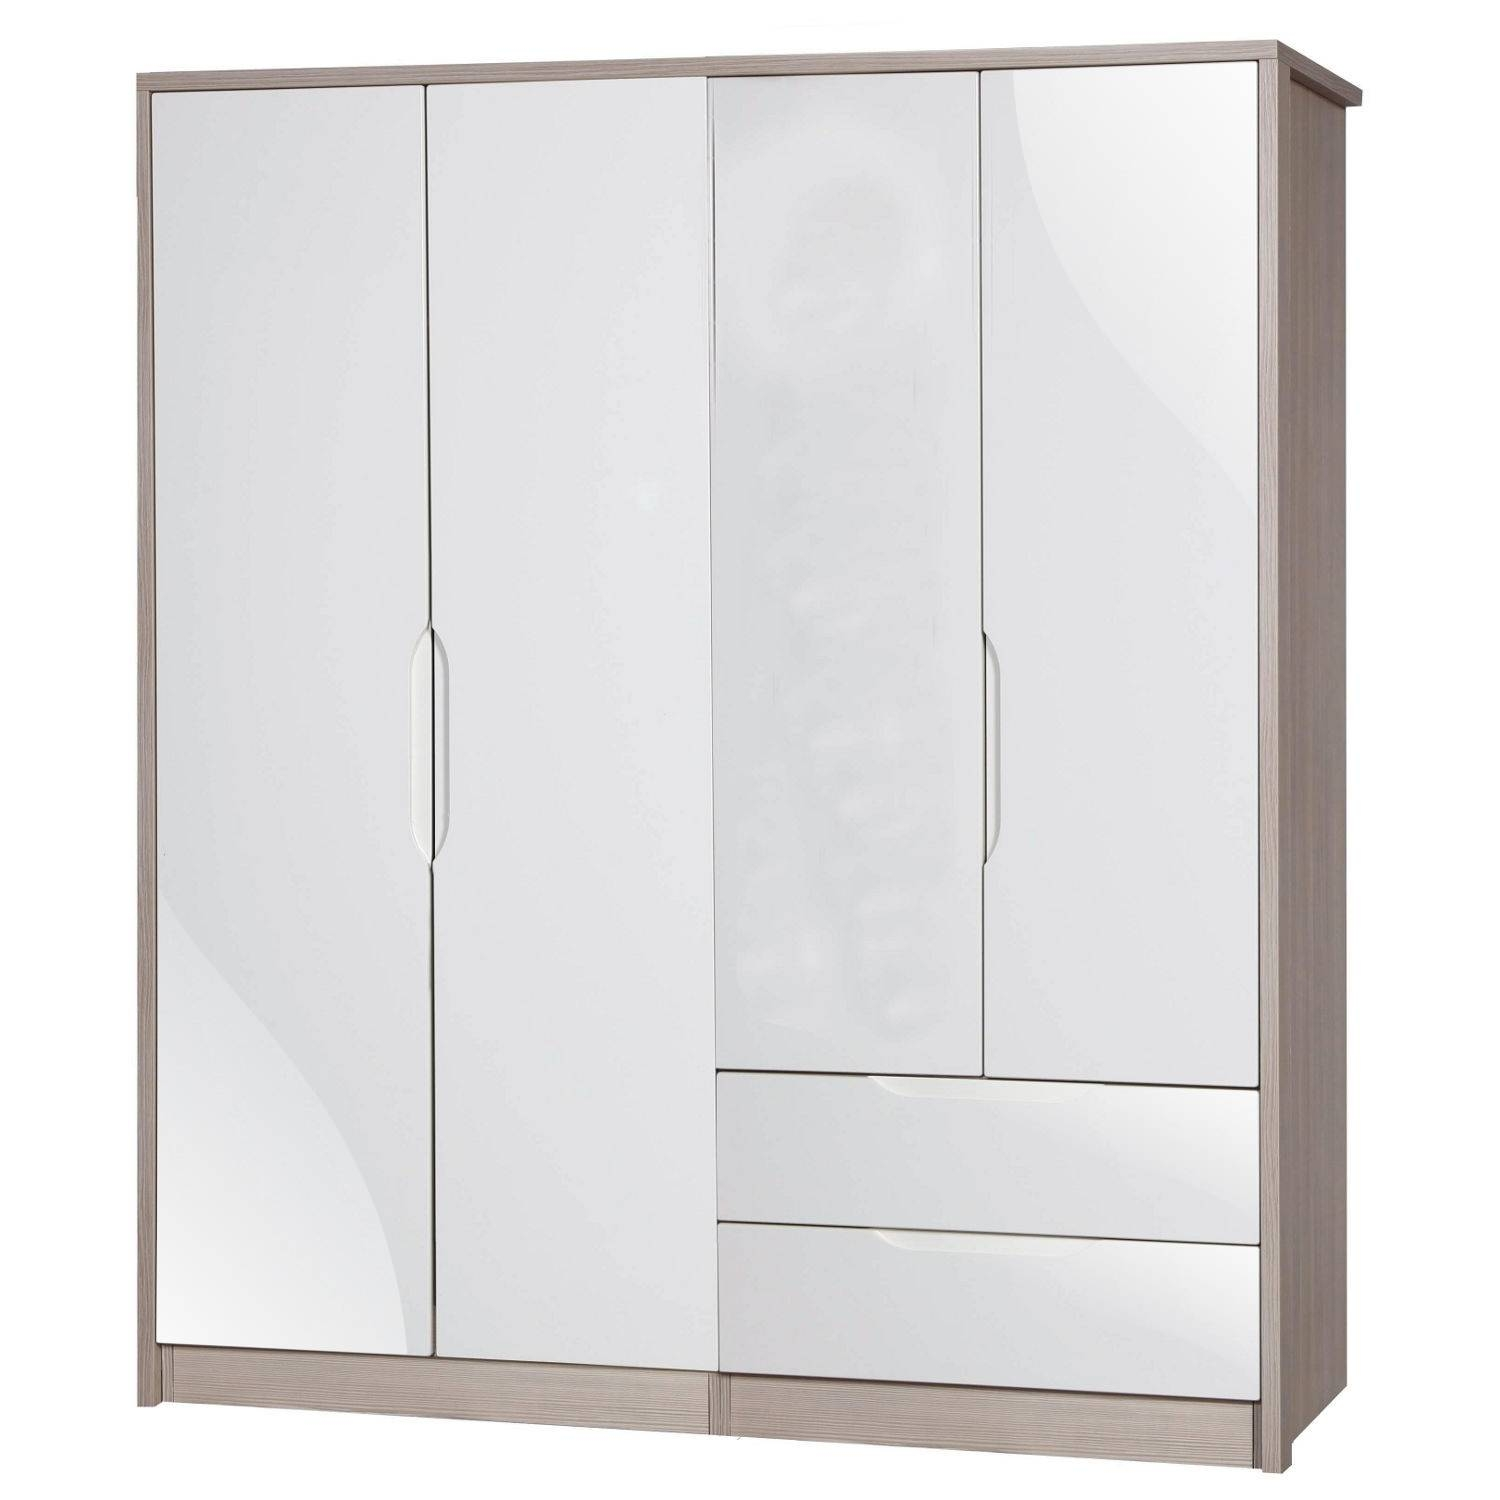 Avola Cream Gloss Large Combi Wardrobe – Next Day Delivery Avola For Combi Wardrobes (Photo 4 of 15)